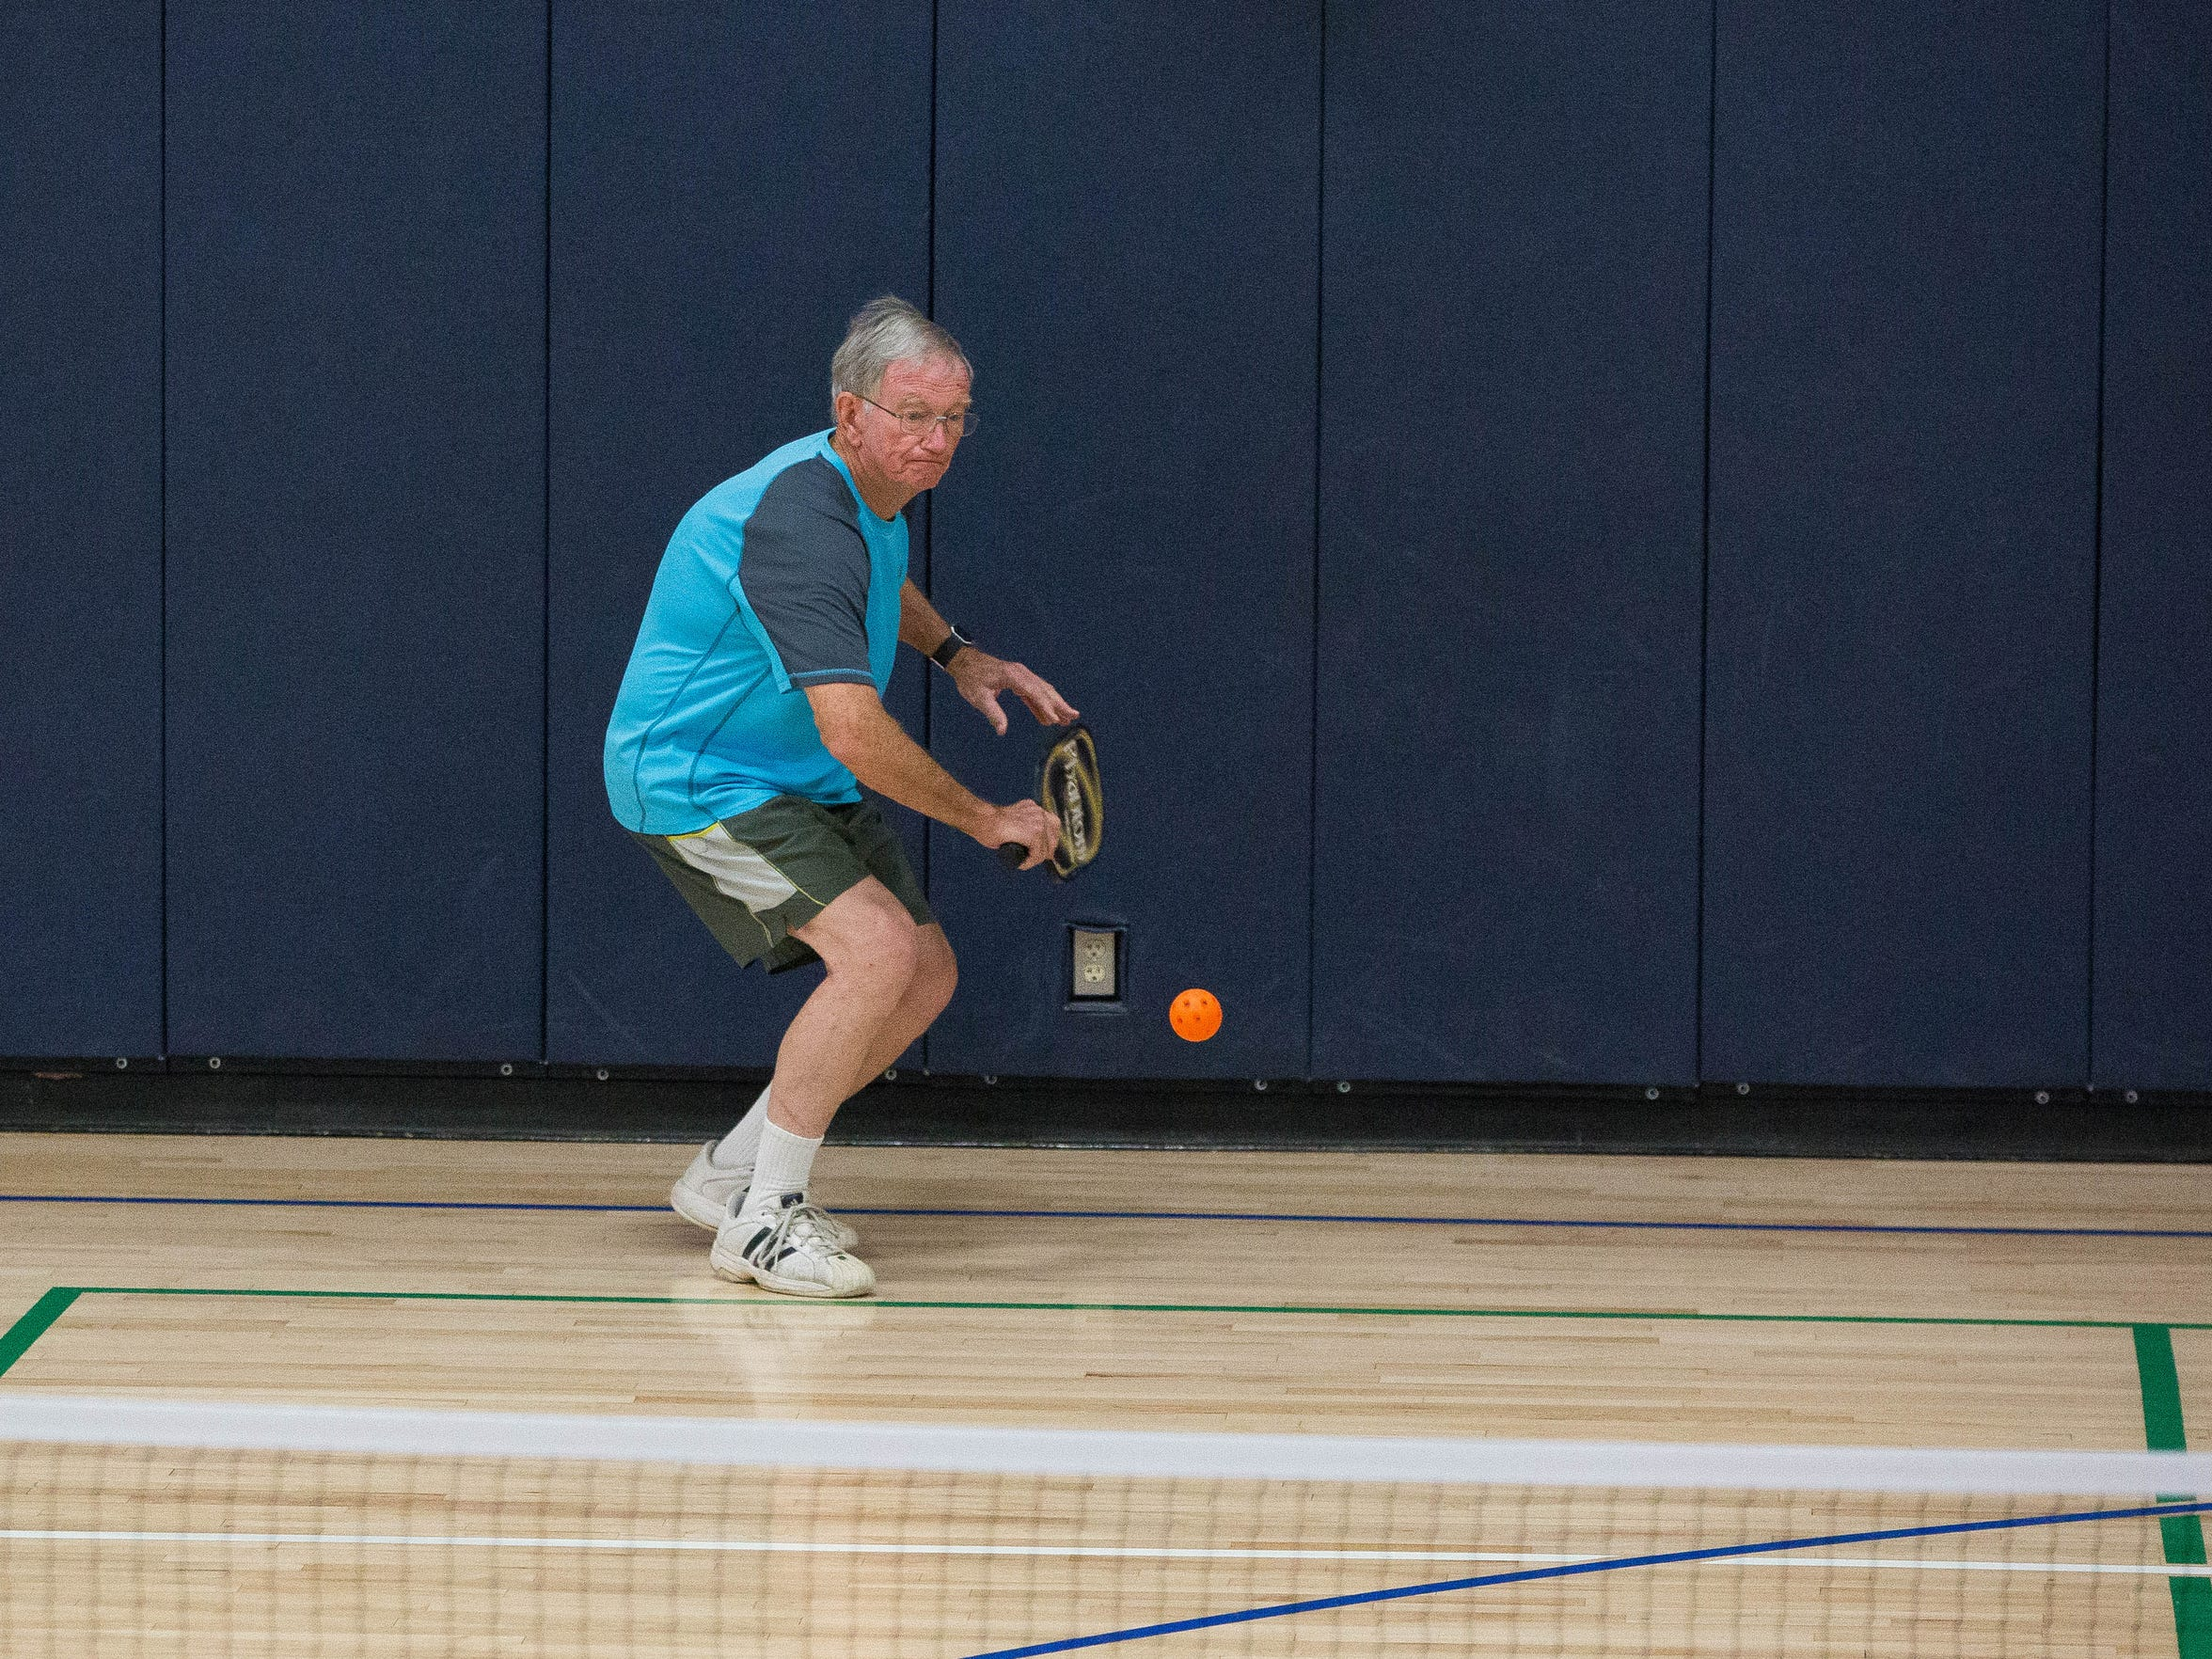 Paul Turner moves into hit a ball during a pickleball